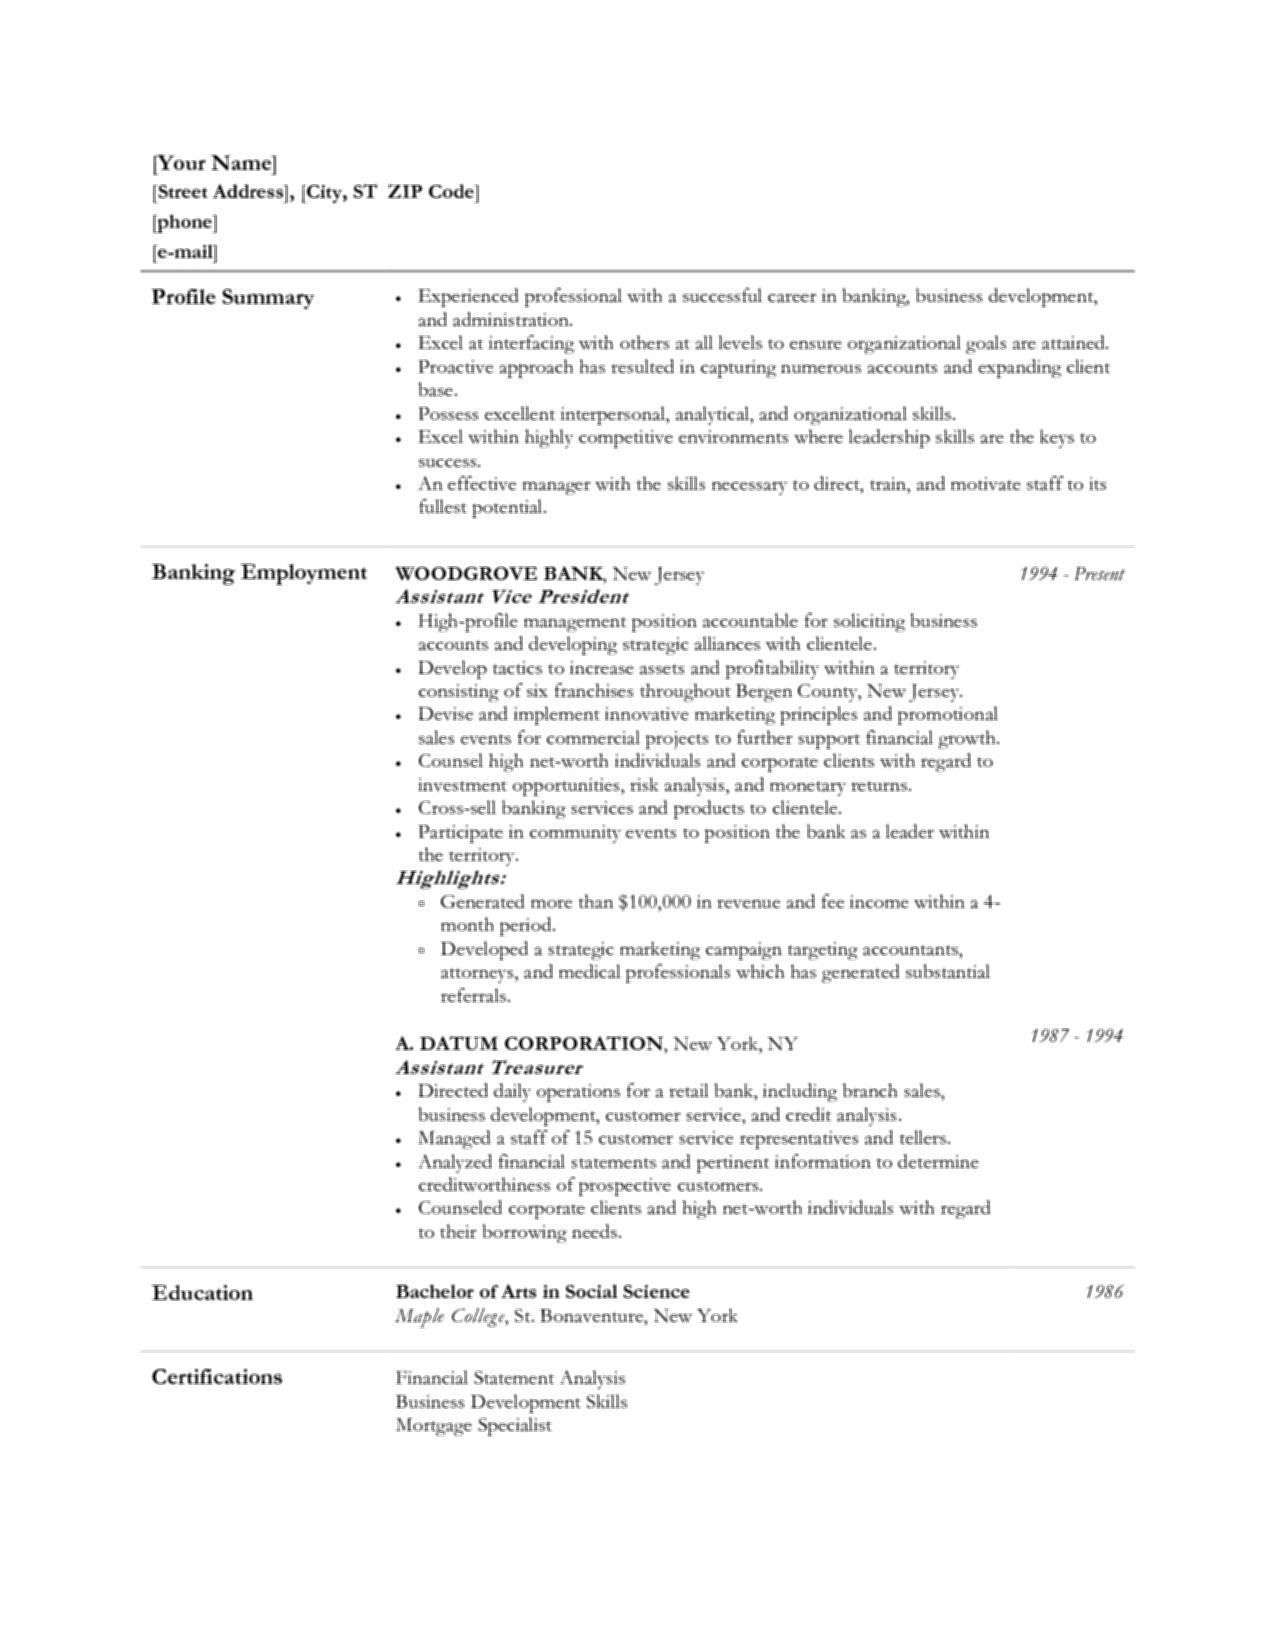 pin on top resume design example headline freshers examples hvac objective statement Resume Headline Resume Freshers Examples